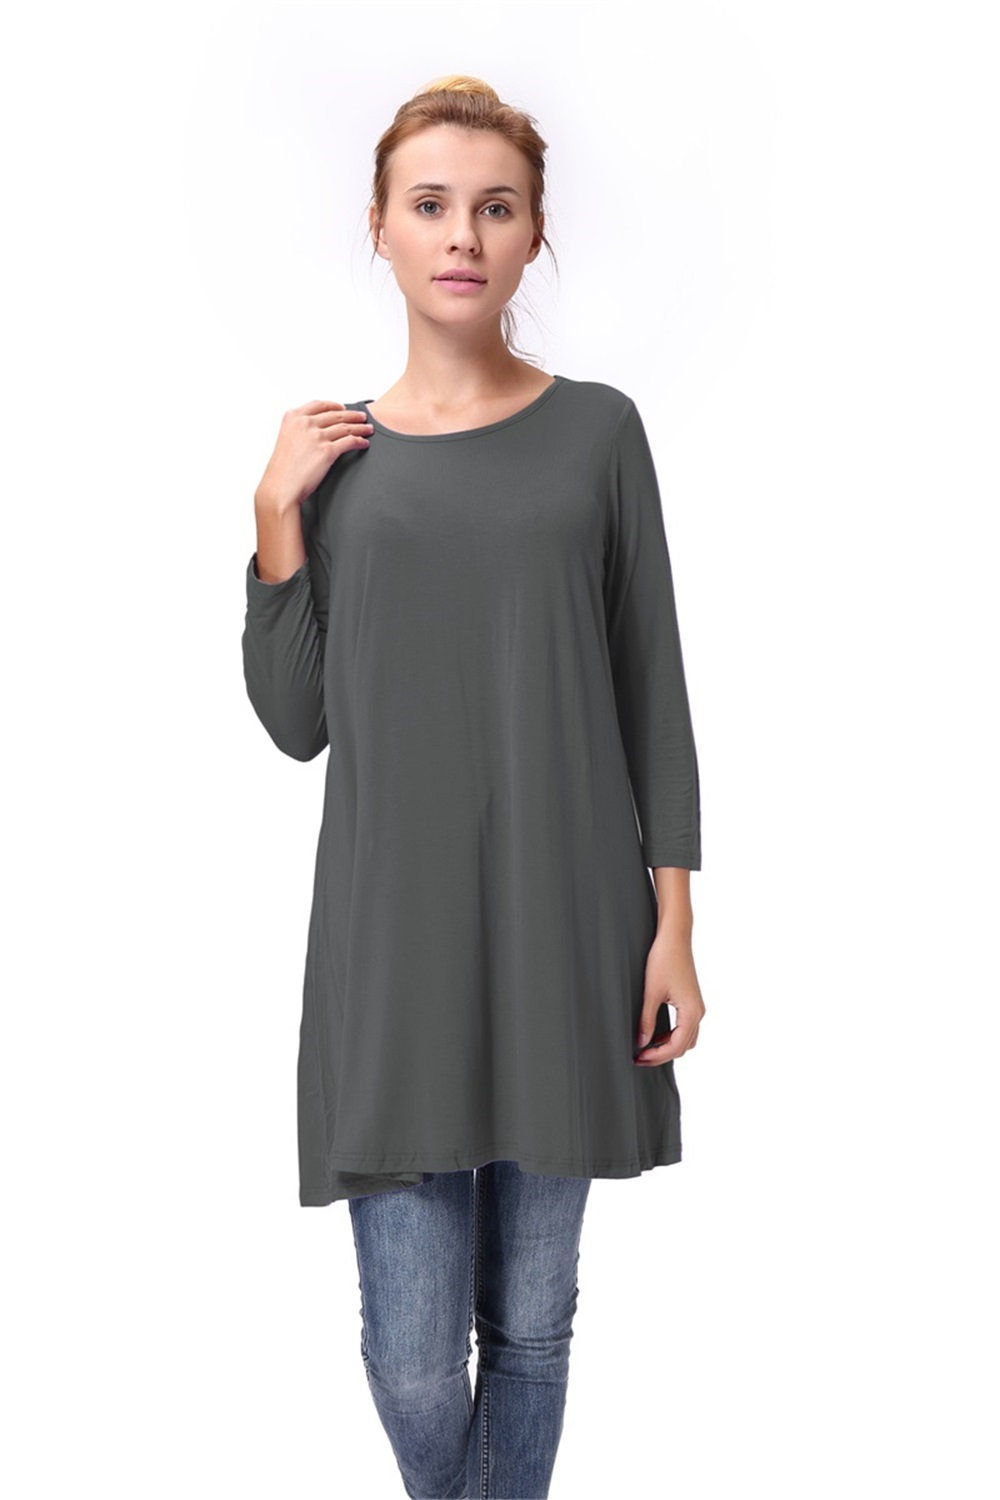 Women-039-s-Long-Tunic-Top-3-4-Sleeve-Dolman-Boat-Neck-USA-Dress-S-M-L-1X-2X-3X-PLUS thumbnail 25